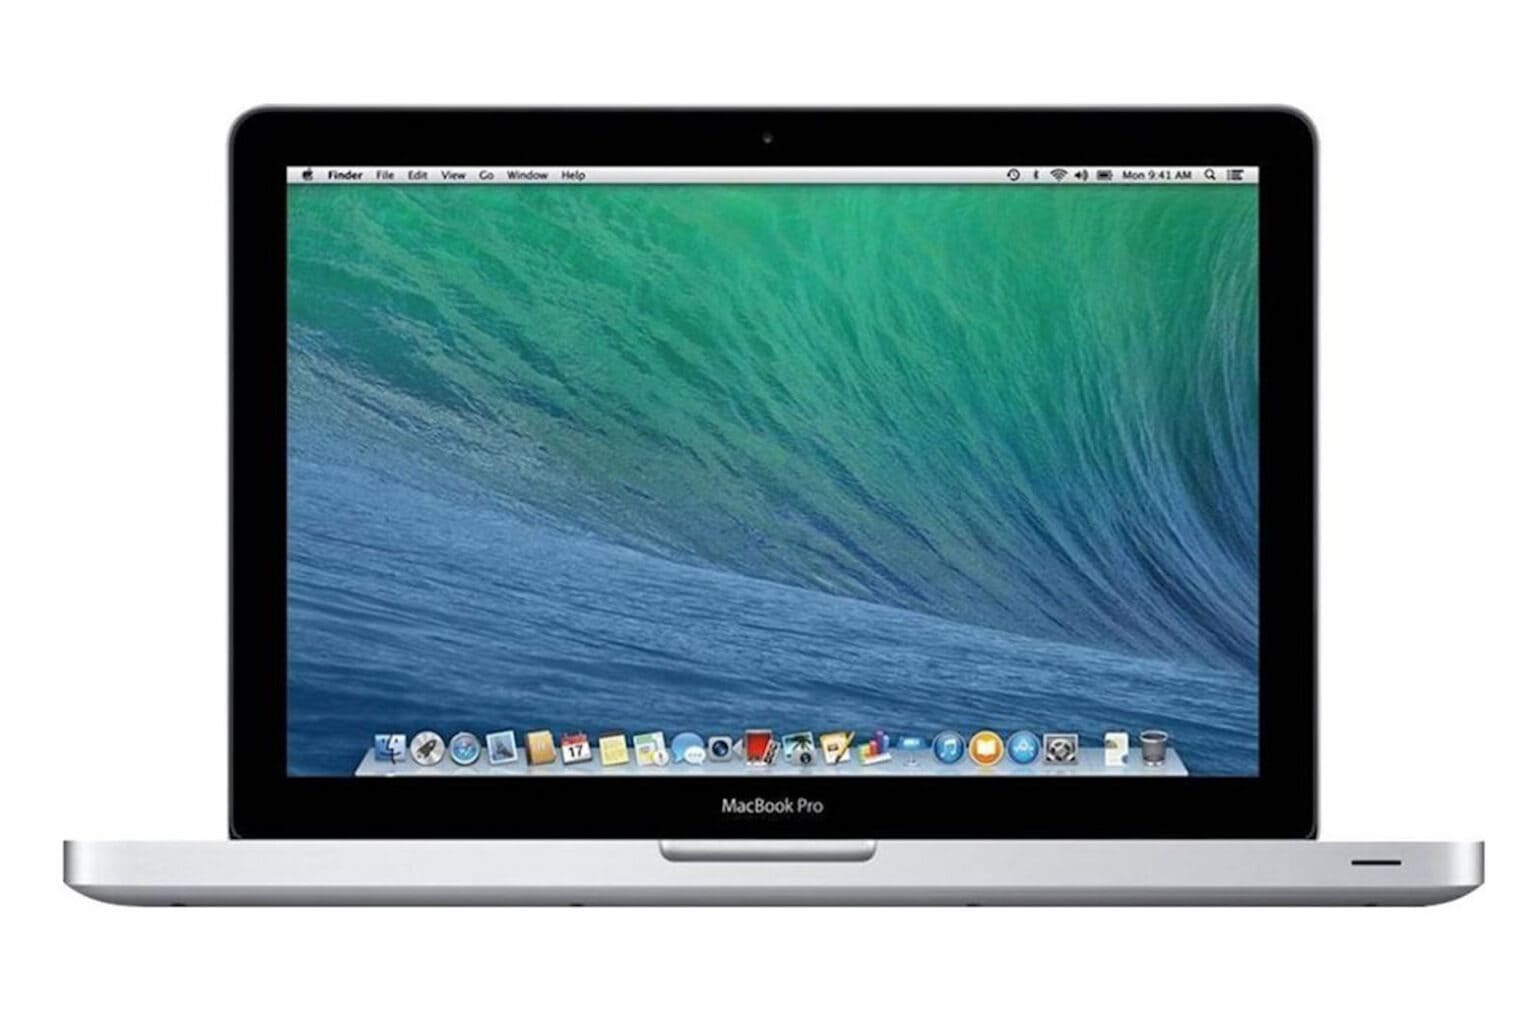 Apple MacBook Pro 13.3-inch: Save money on refurbished Macs, from MacBook Pro to MacBook Air, Mac mini and iMac.